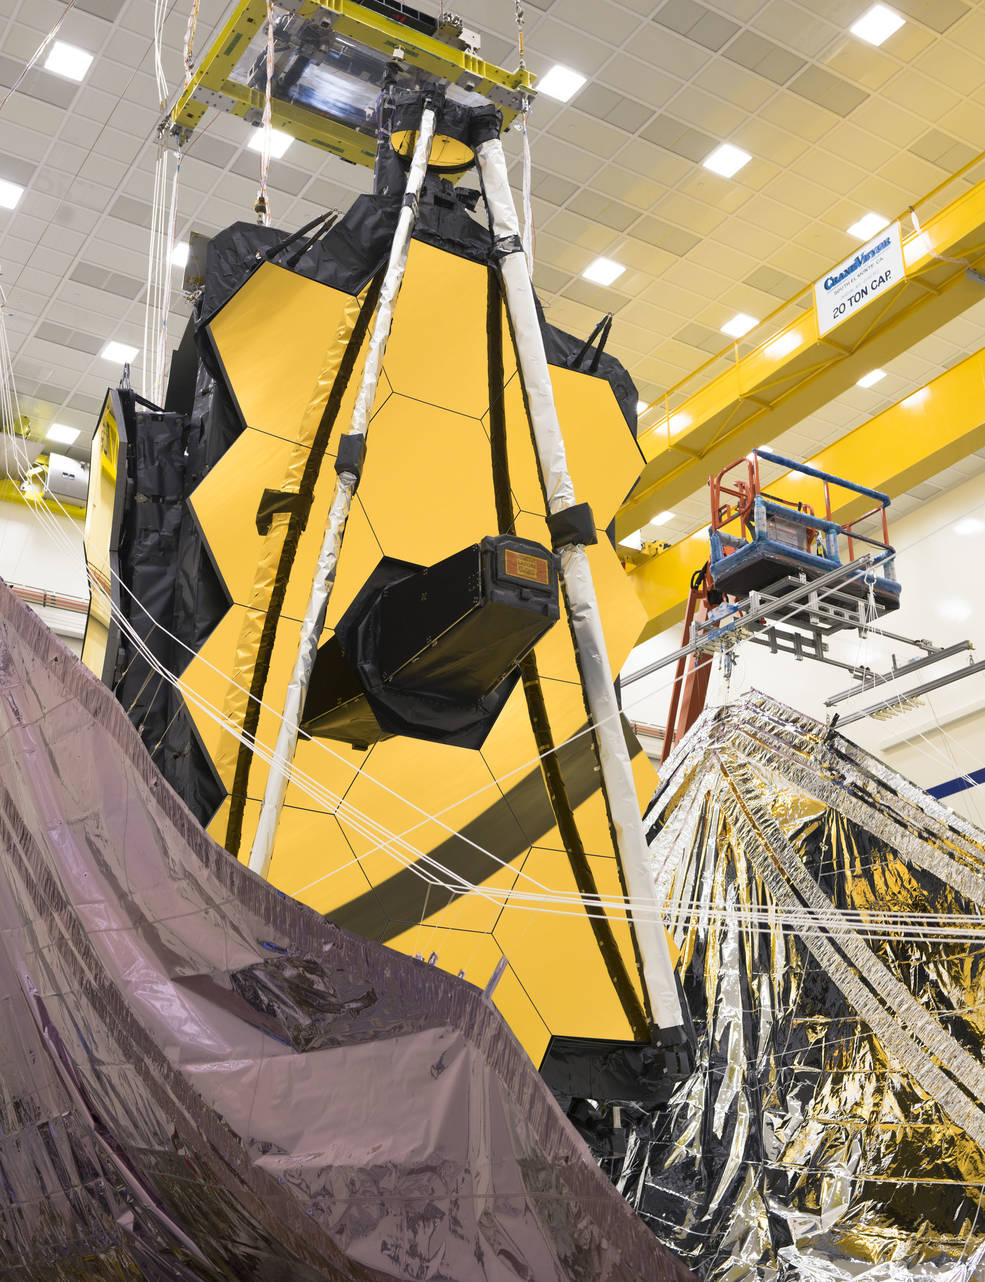 The Webb Telescope's sunshield is lifted vertically on both sides in preparation for the folding process.